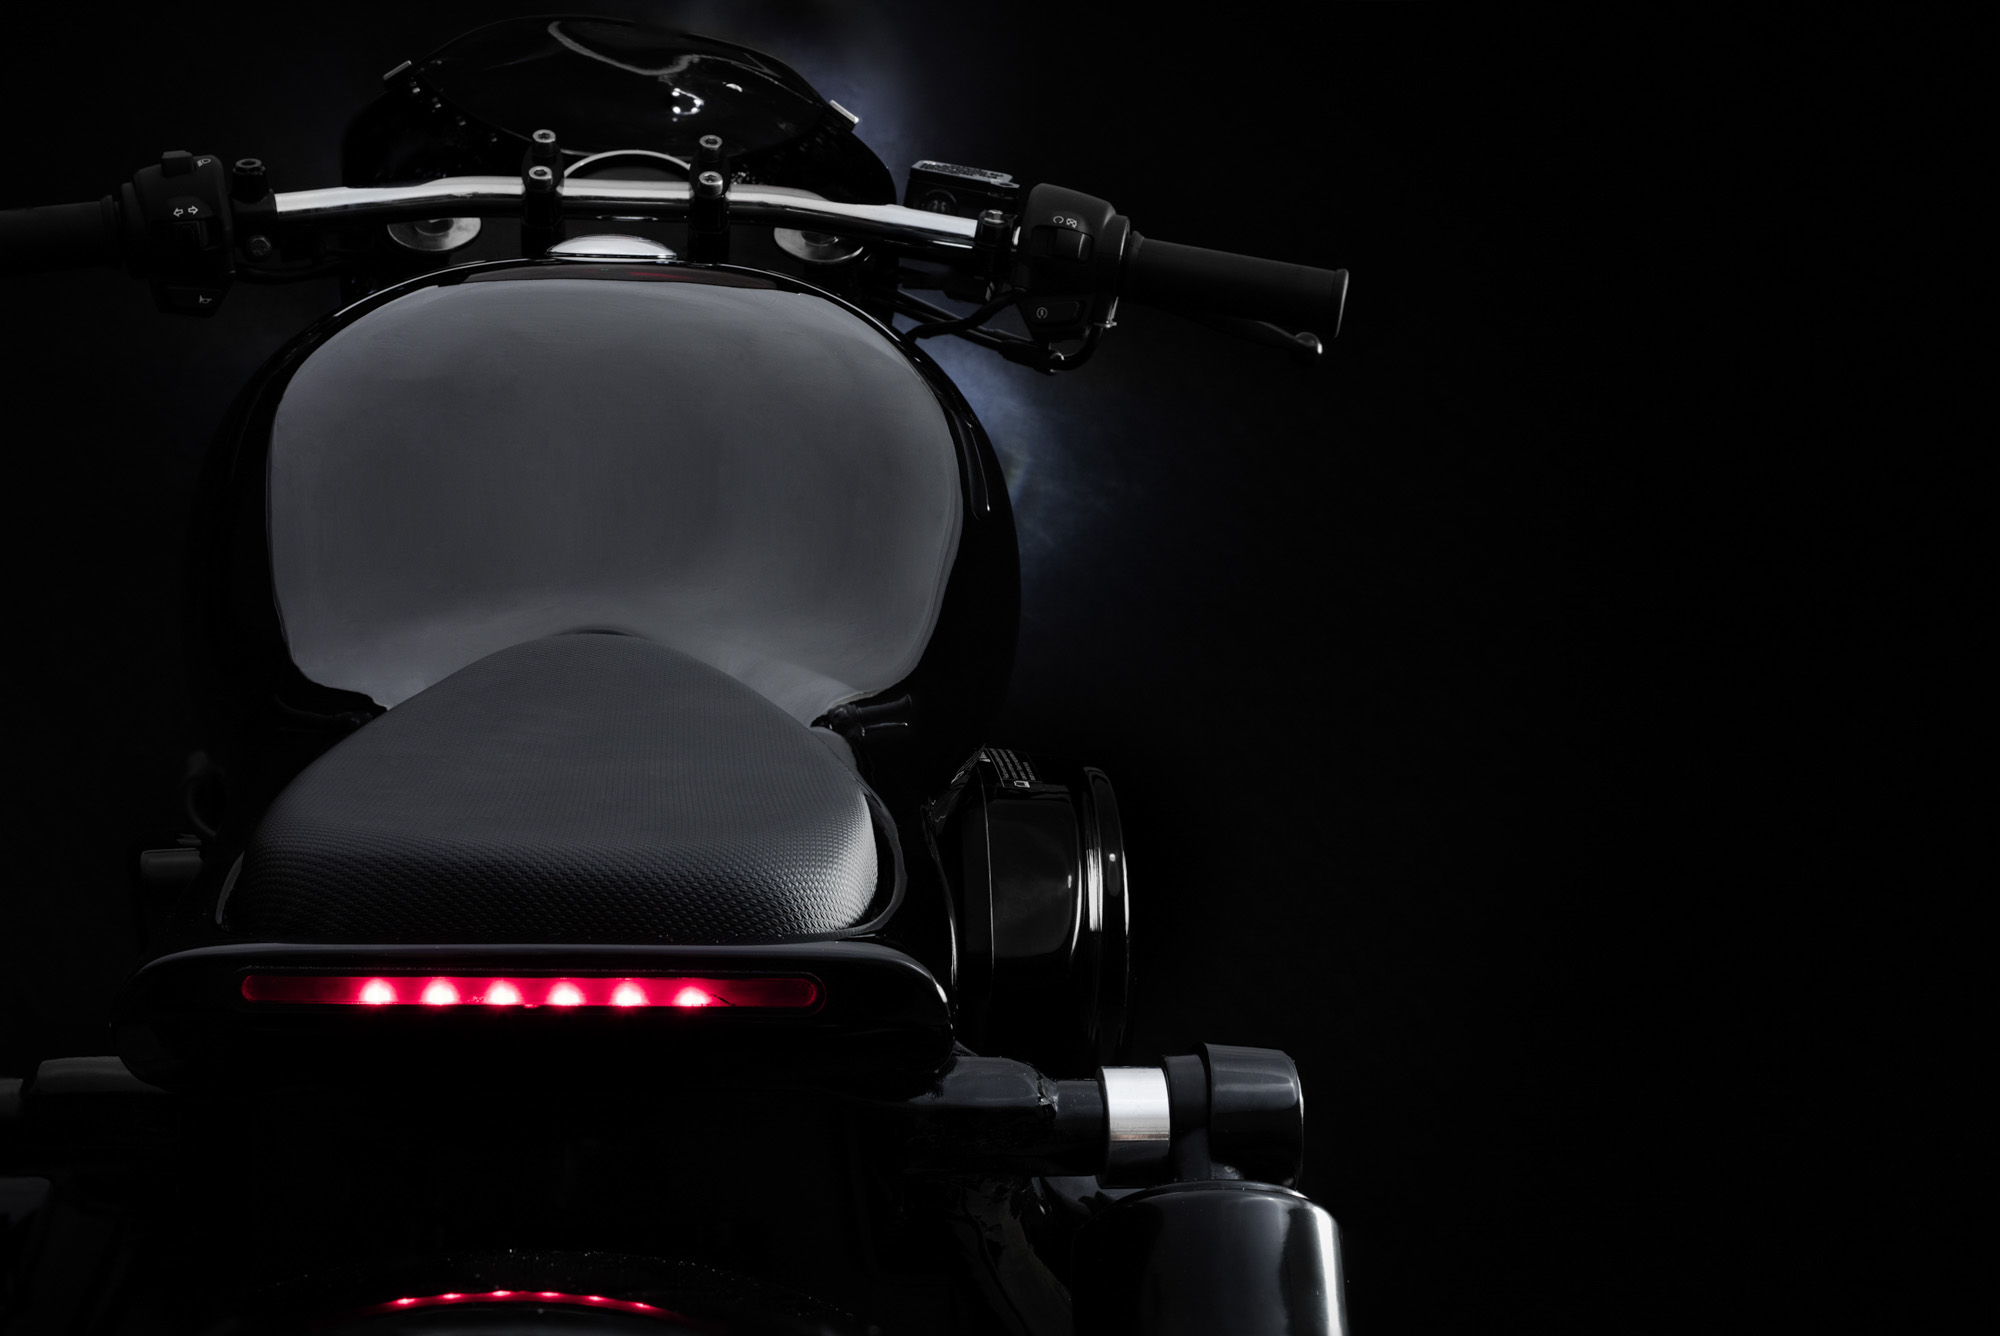 Integrated LED Brake & Indicators  Elegantly tucked in the rear of the unibody is a high-powered LED light which integrates the brakes and turn signals into one clean stream.